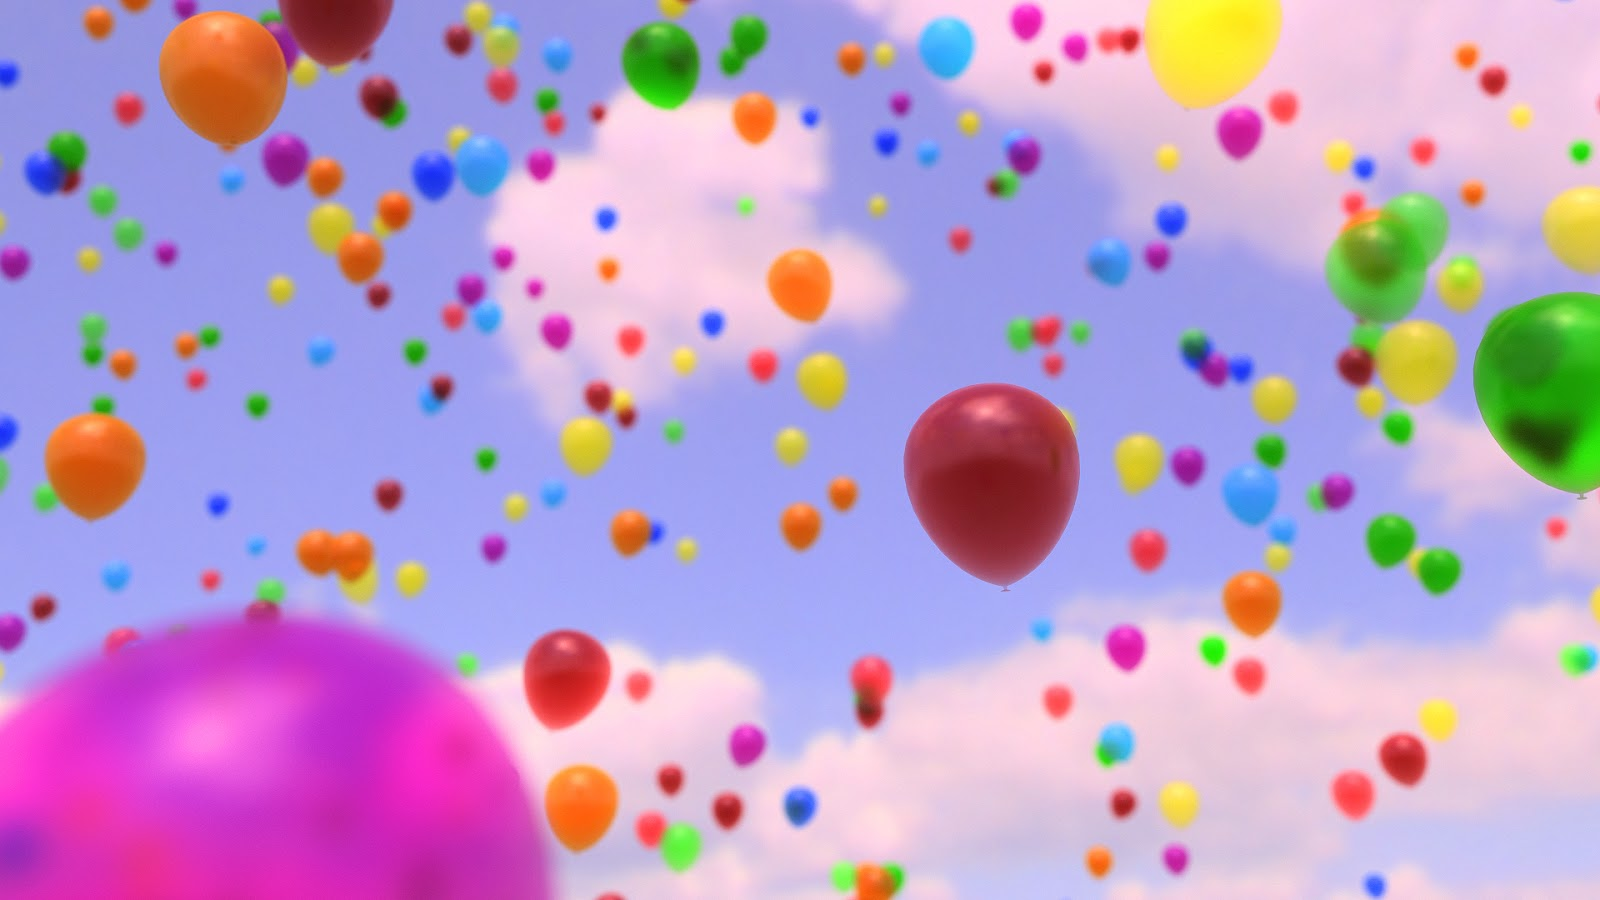 balloons background wallpaper - photo #15